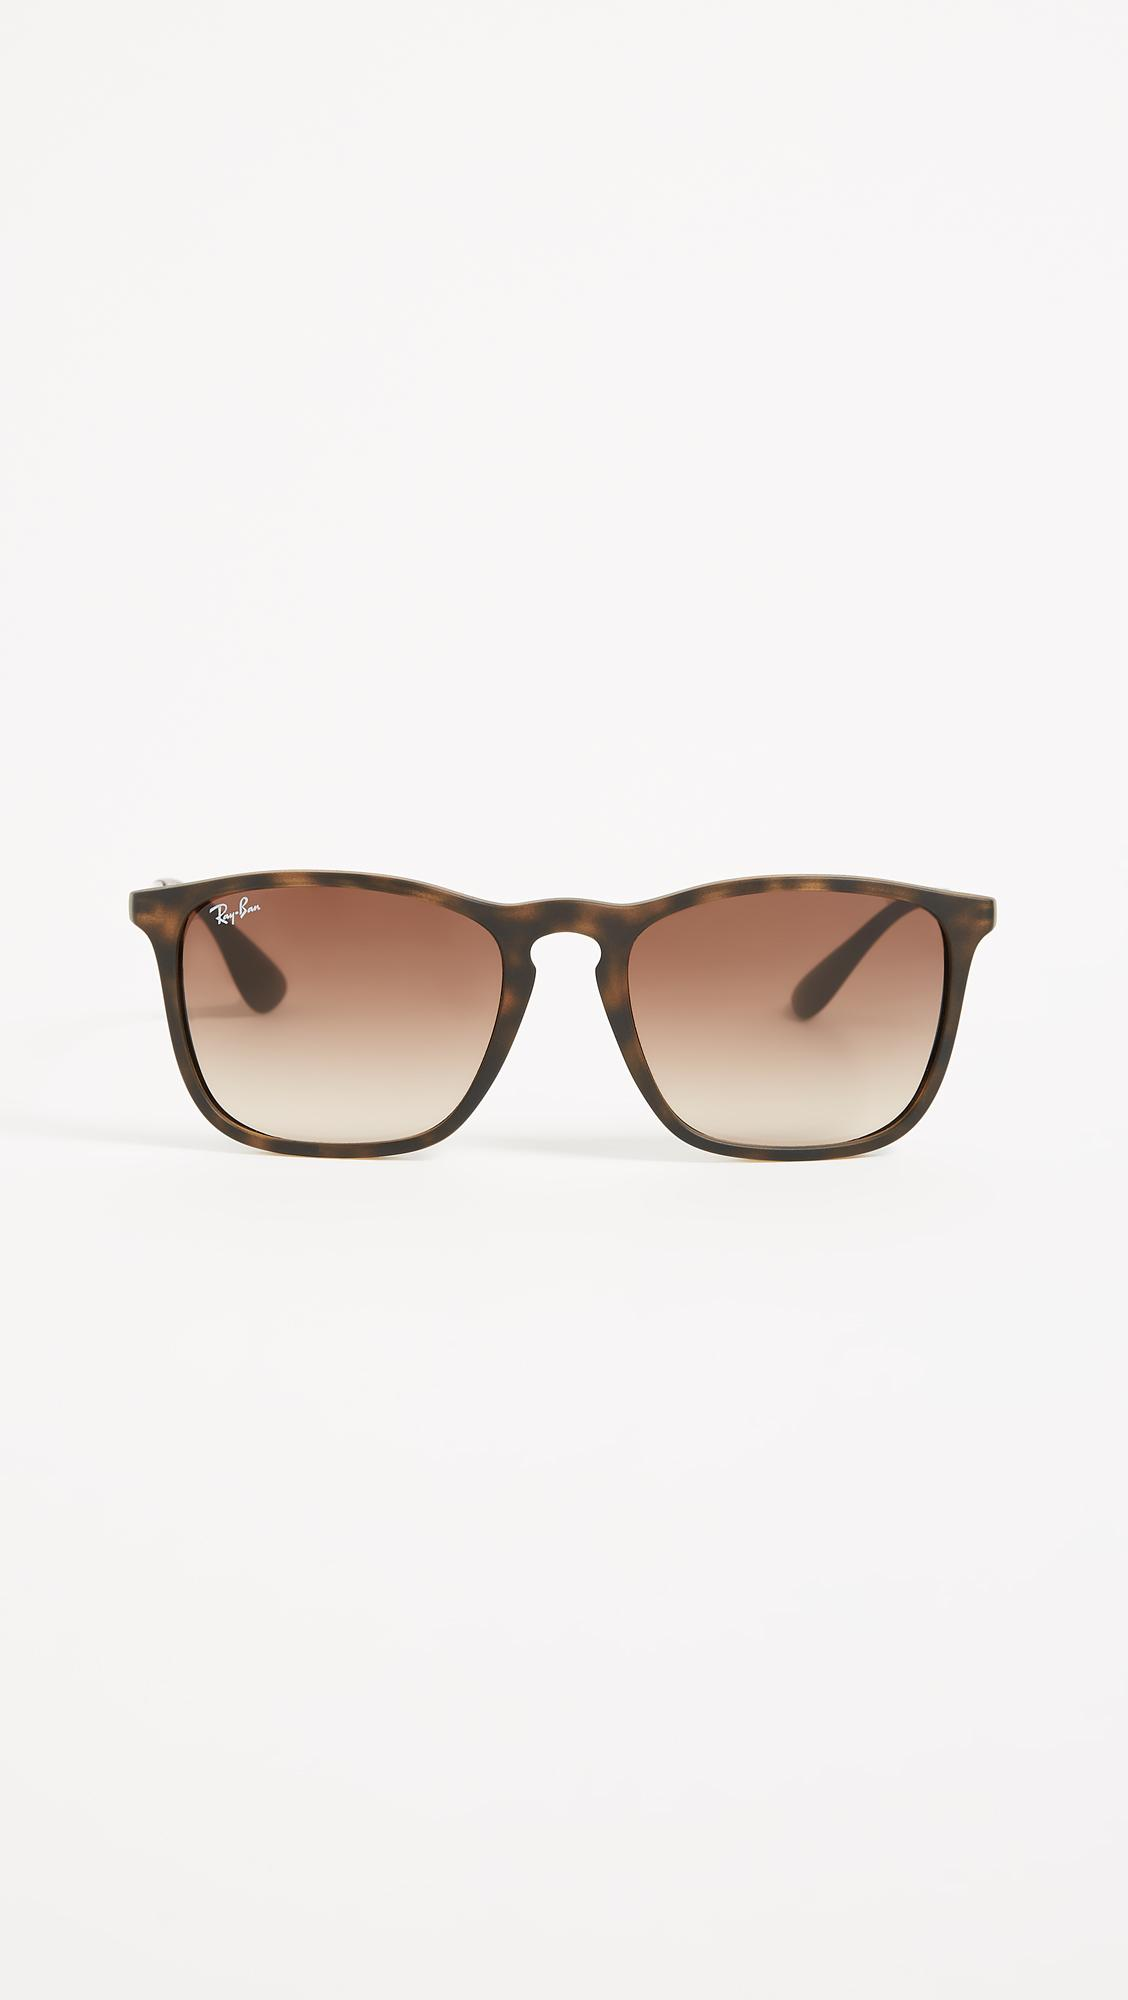 291bfec873 Lyst - Ray-Ban Rb4187 Chris Square Sunglasses in Brown - Save 20%